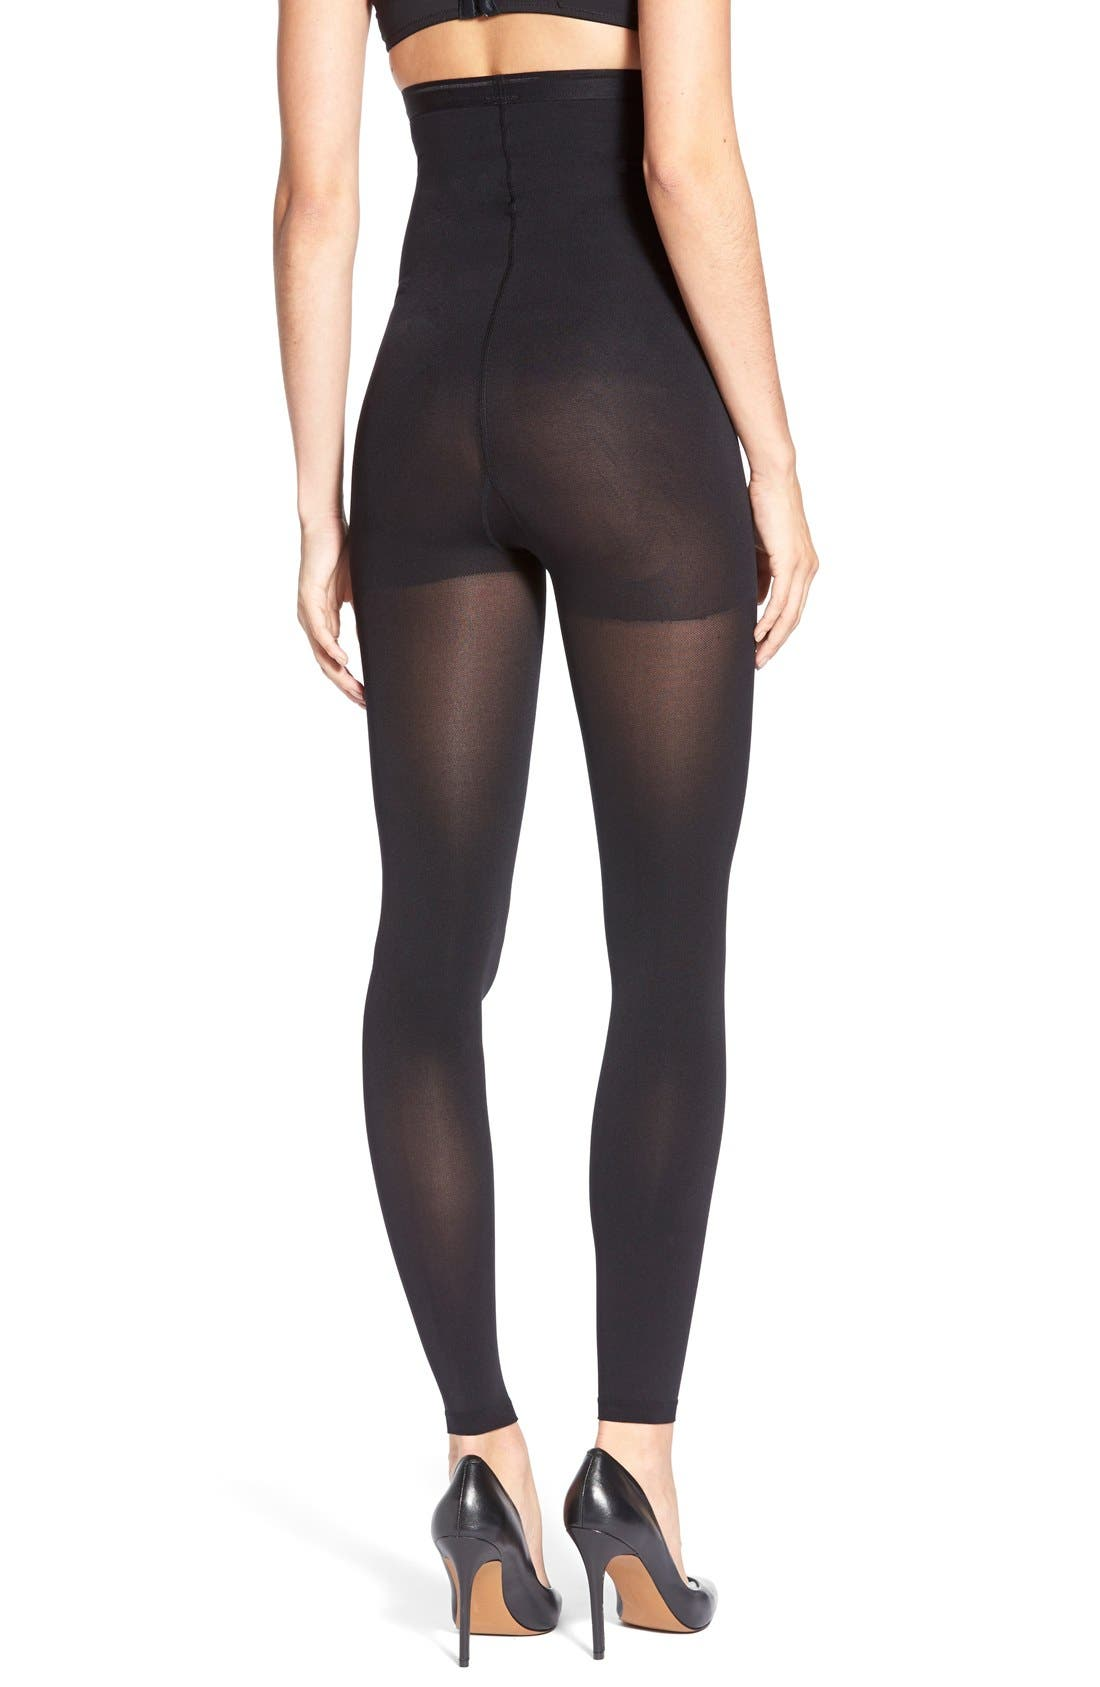 High Rise Opaque Footless Shaping Tights,                             Alternate thumbnail 2, color,                             BLACK